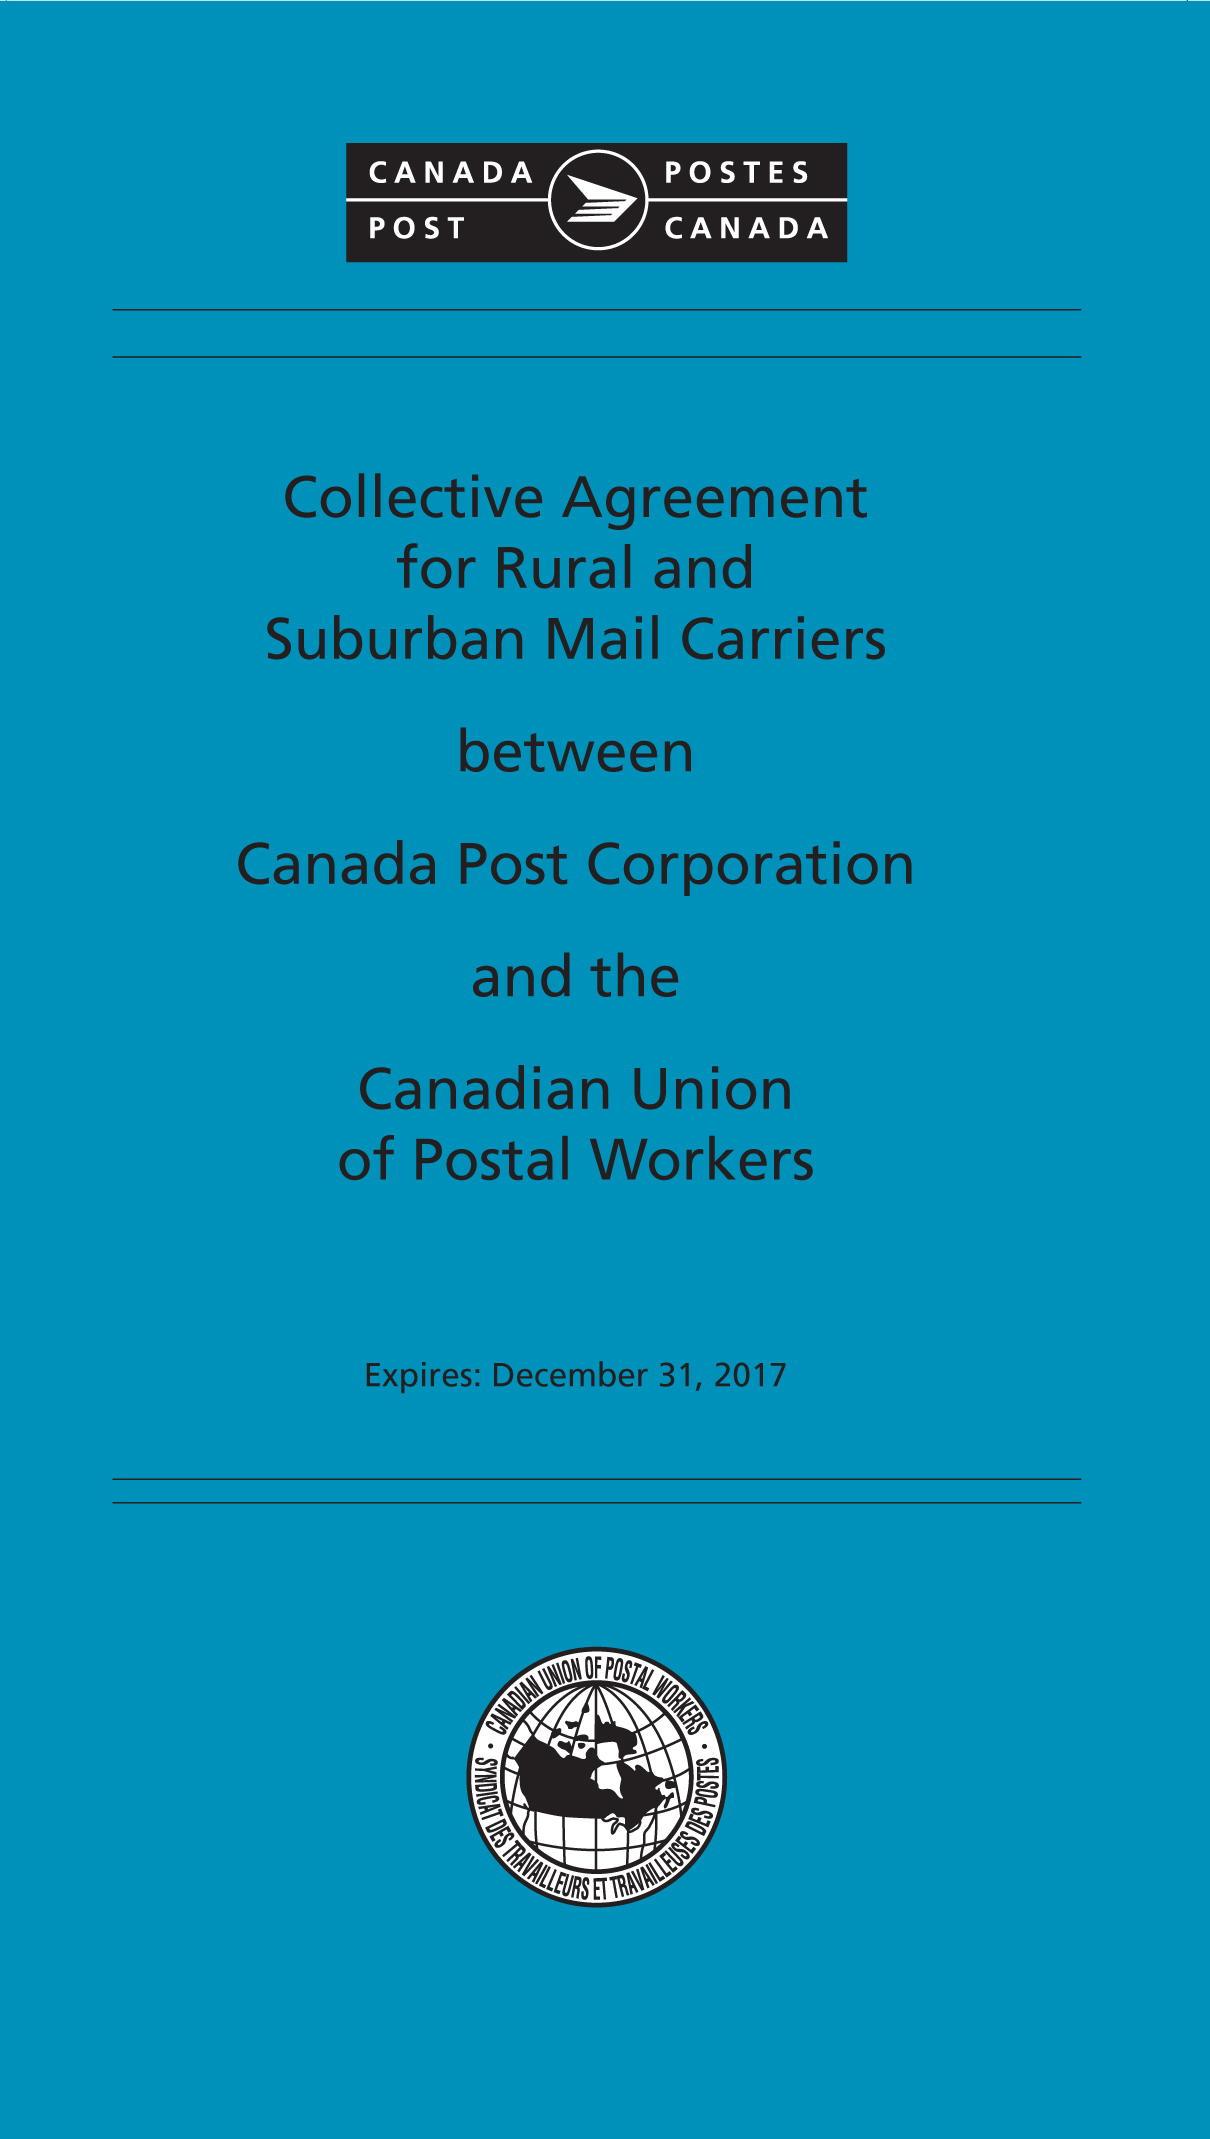 Collective Agreement for Rural and Suburban Mail Carriers between Canada Post Corporation and the Canadian Union of Postal Workers (Expires: December 31, 2017)